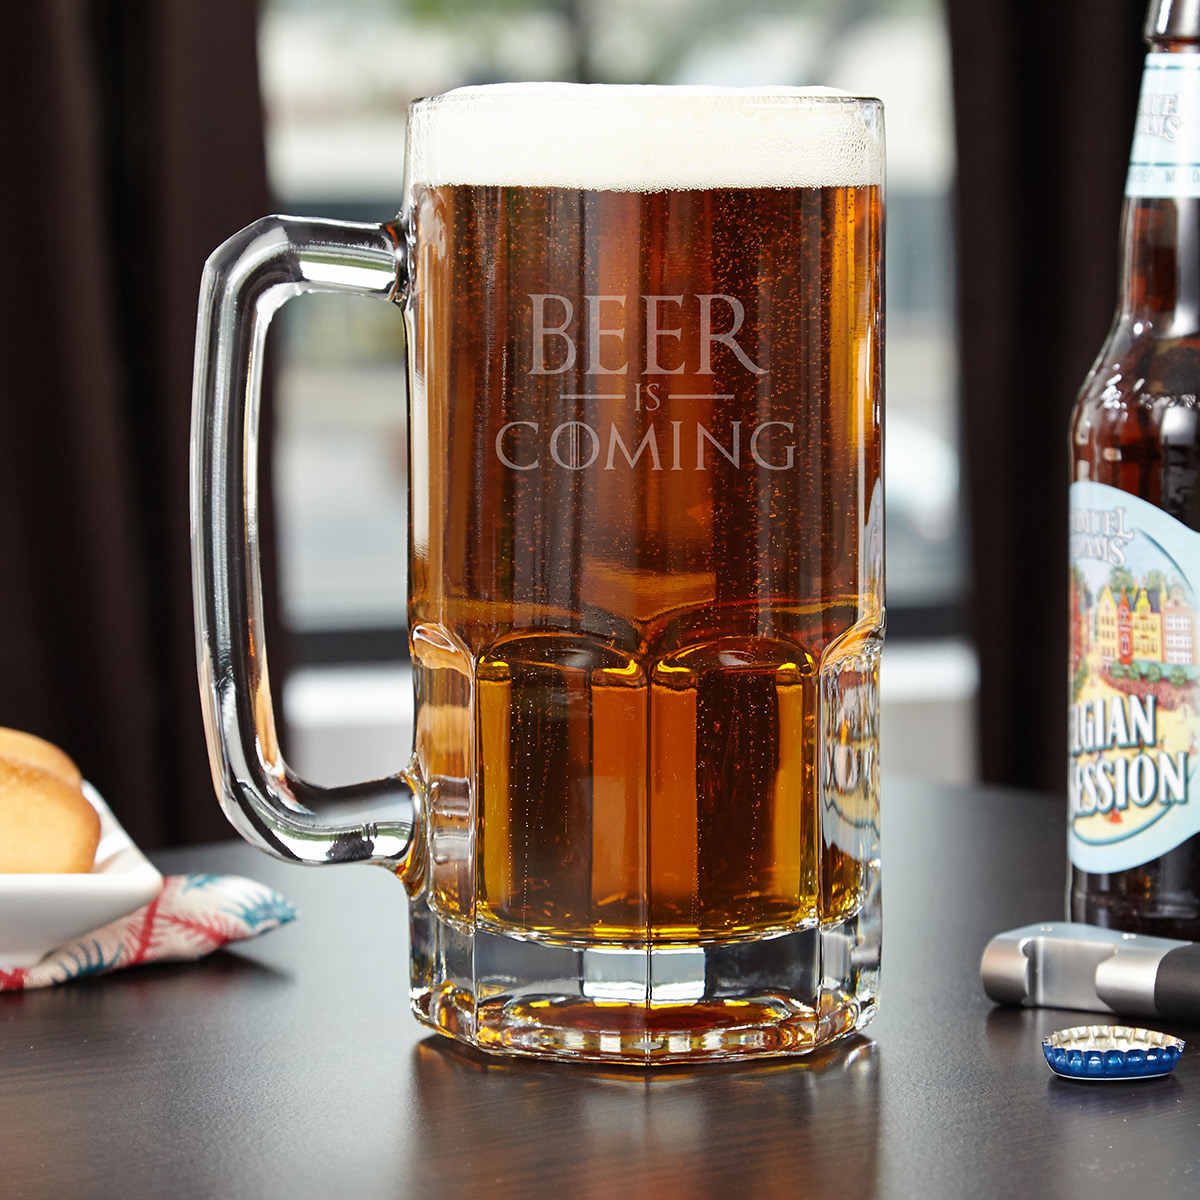 Game of Thrones isn't for the faint of heart. Neither is our colossal engraved beer mug. Capable of holding an entire liter worth of beer, this beer mug is exactly what you need when you re-watch the Red Wedding or Blackwater. While you wait for winter #mug